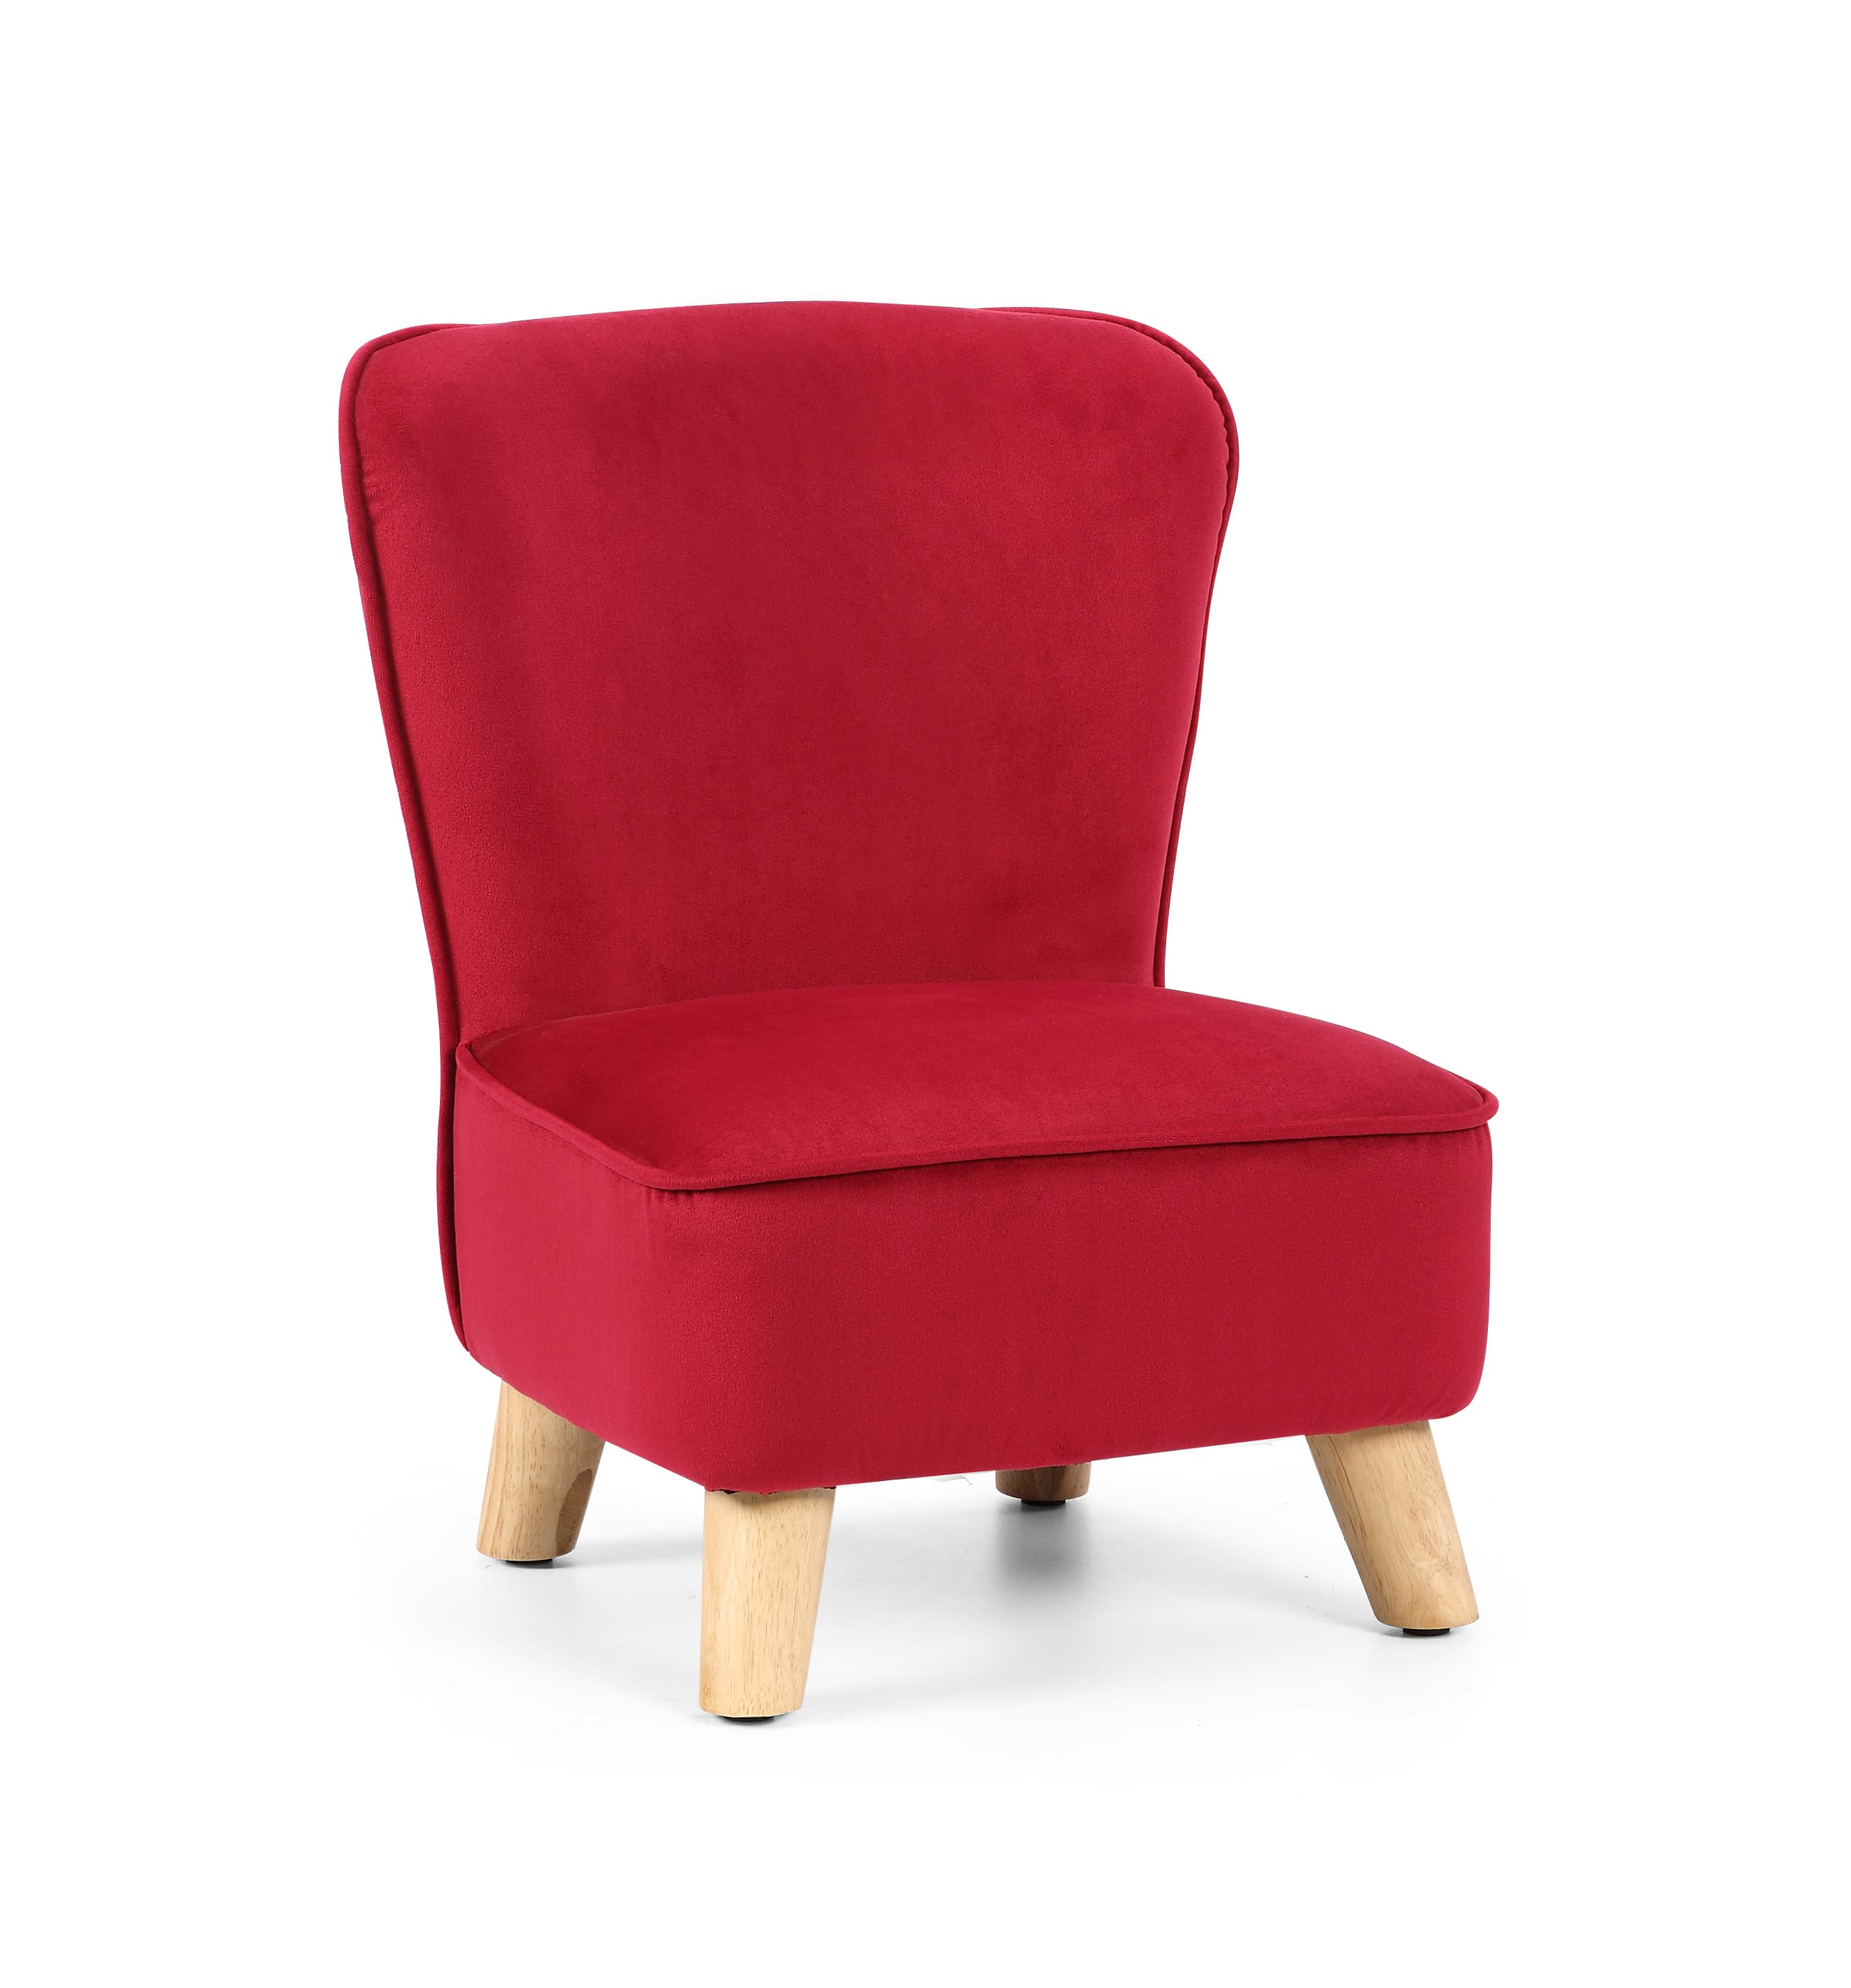 Tilly Kids Chair